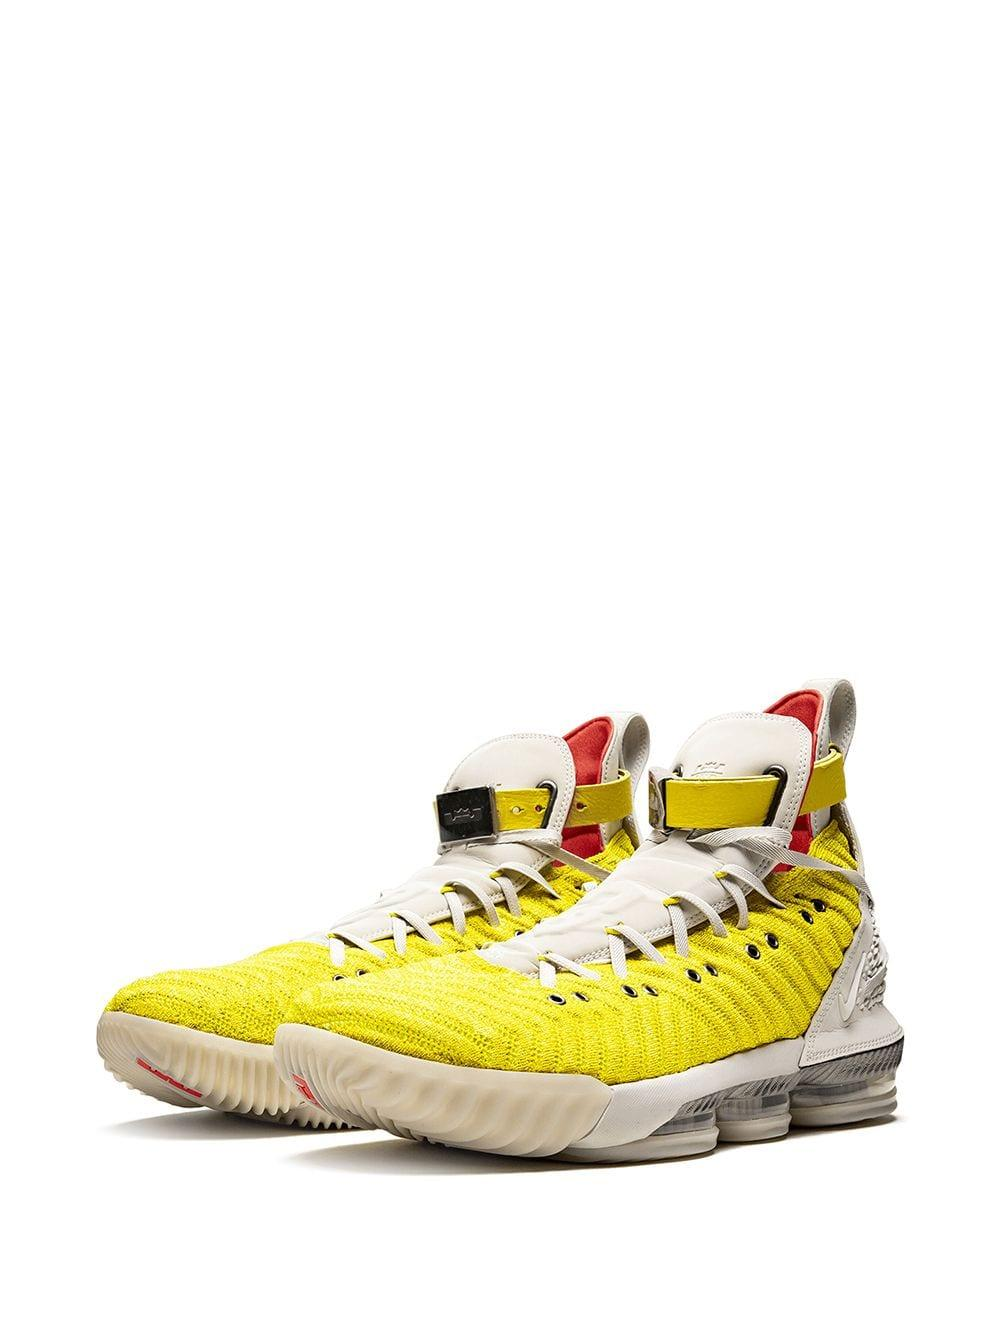 d5615fd23b3a2 Nike Lebron 16 Sneakers in Yellow for Men - Lyst